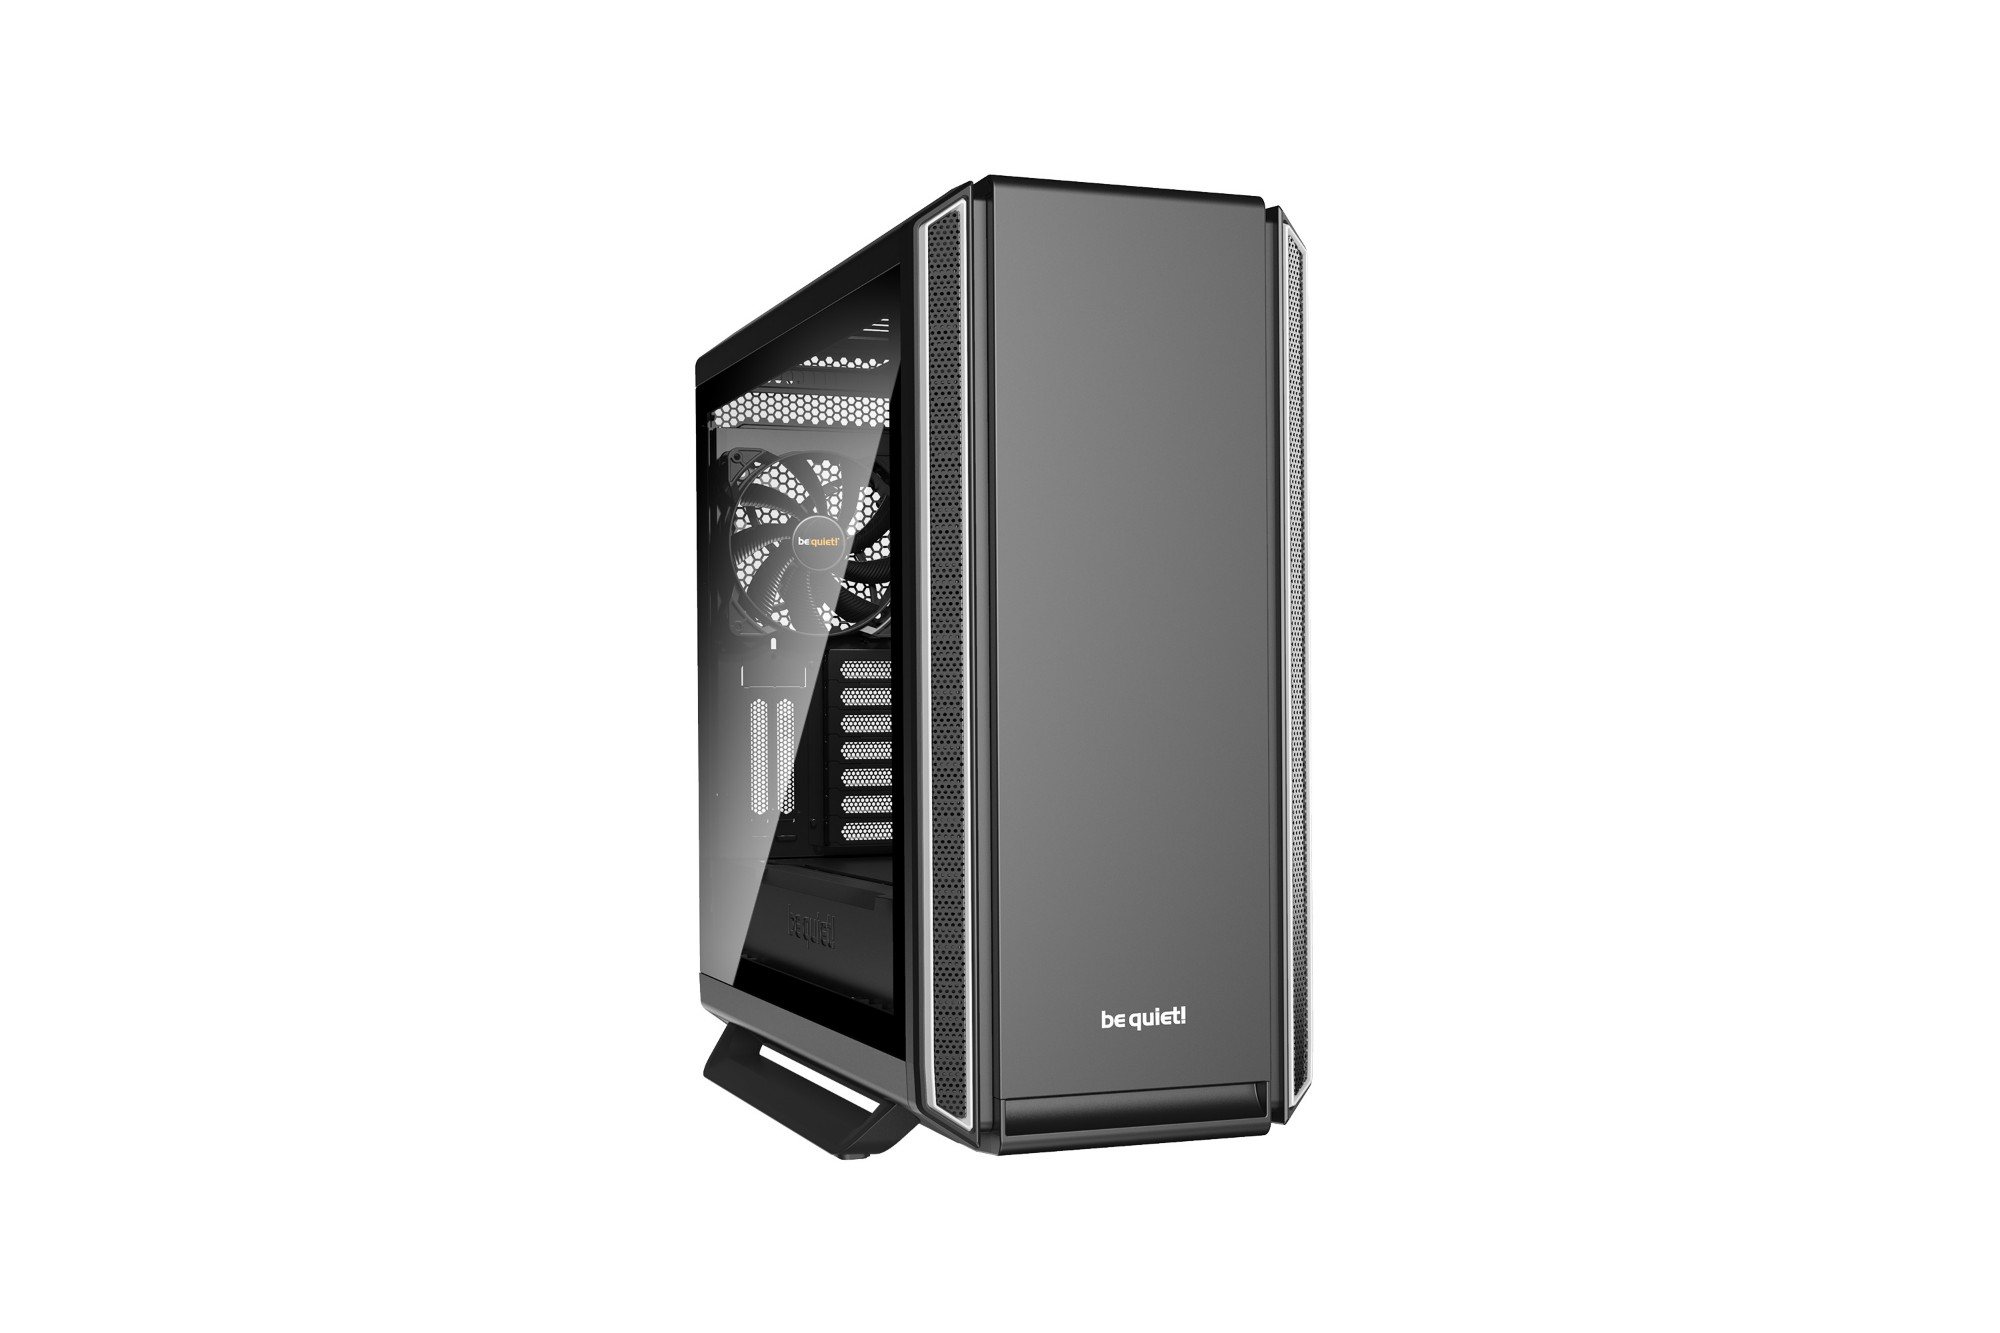 BE QUIET! BGW30 SILENT BASE 801 WINDOW COMPUTER CASE MIDI-TOWER BLACK,SILVER